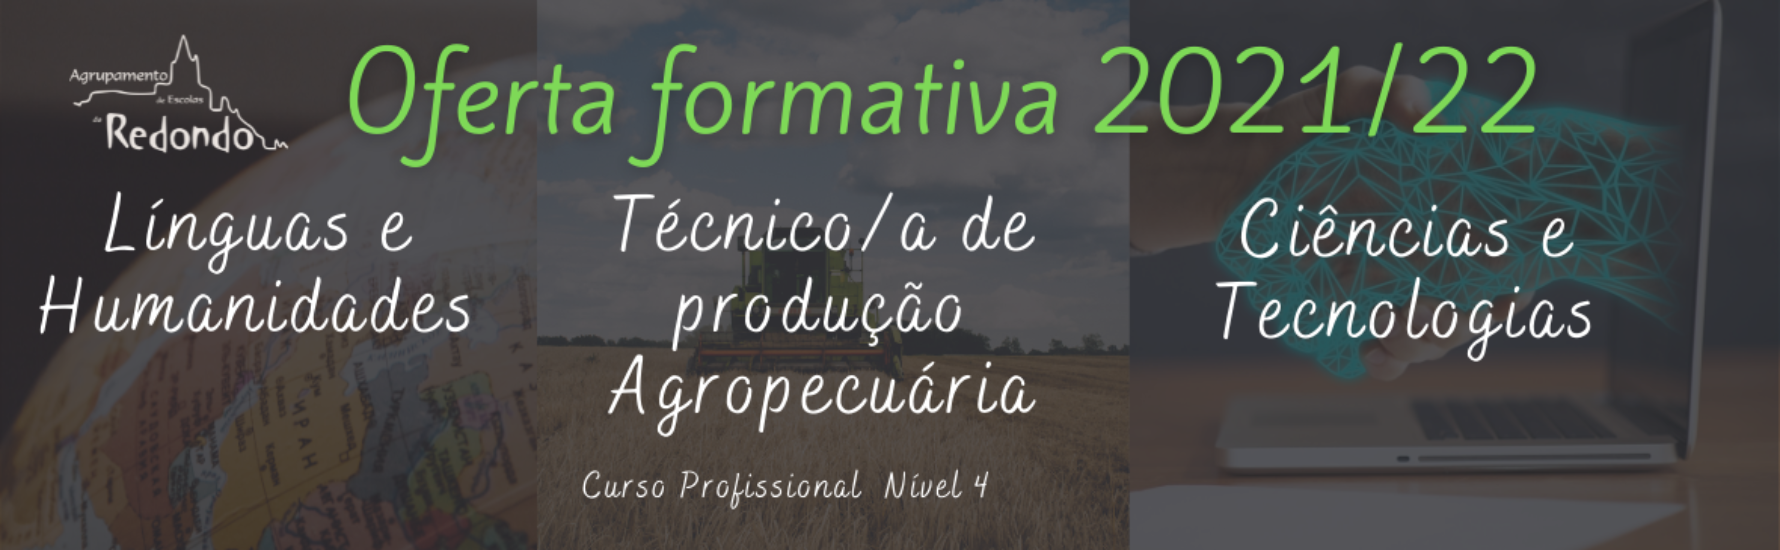 Formacao 202122 (3)